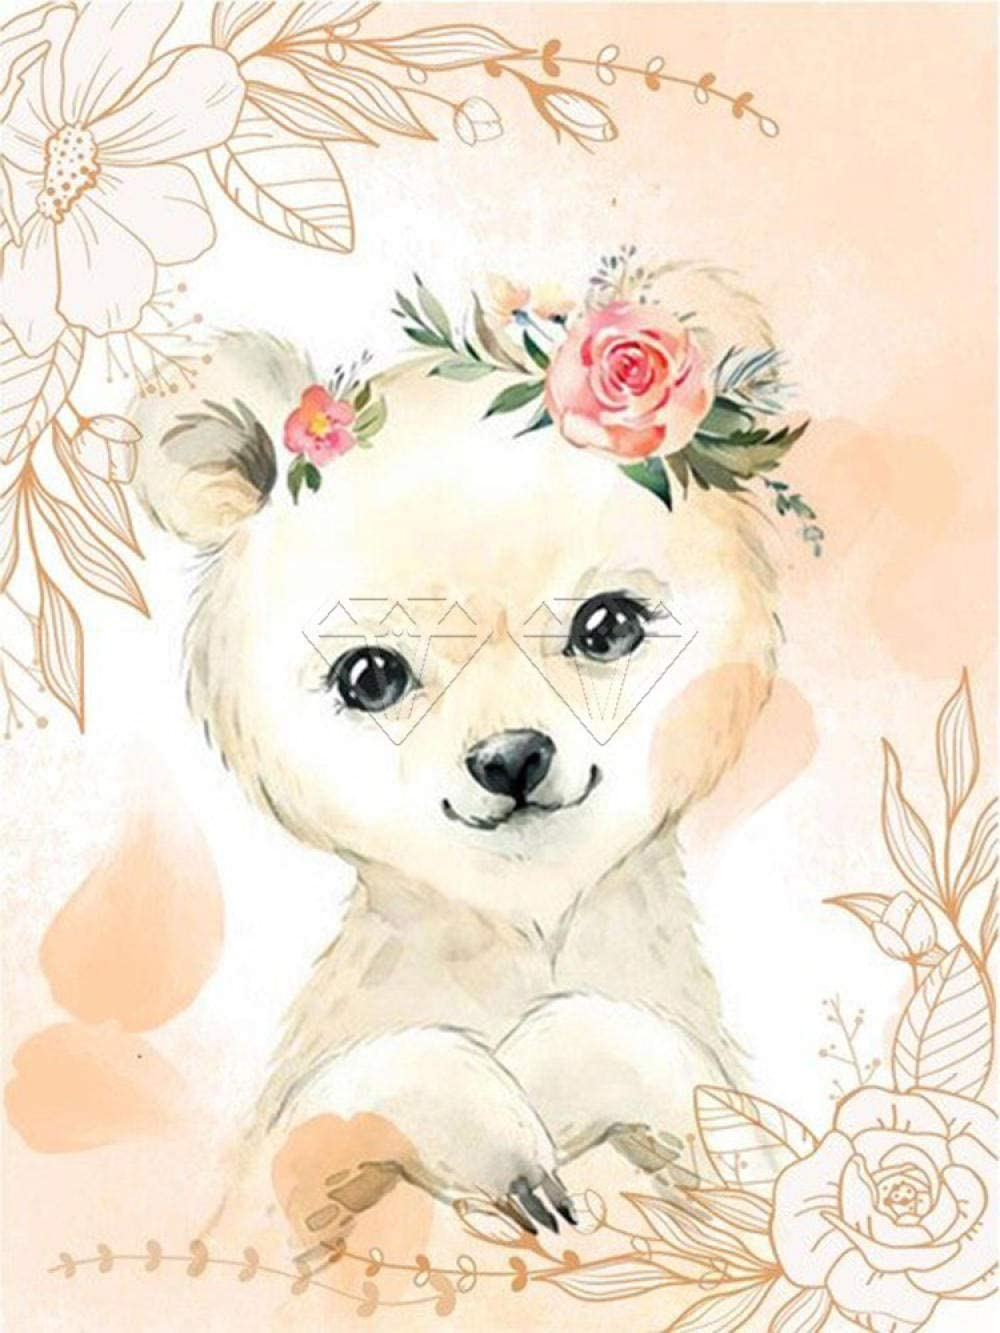 Jigsaw Puzzles 3000 Pieces Piece outlet Sales -Cute Bear- Animal